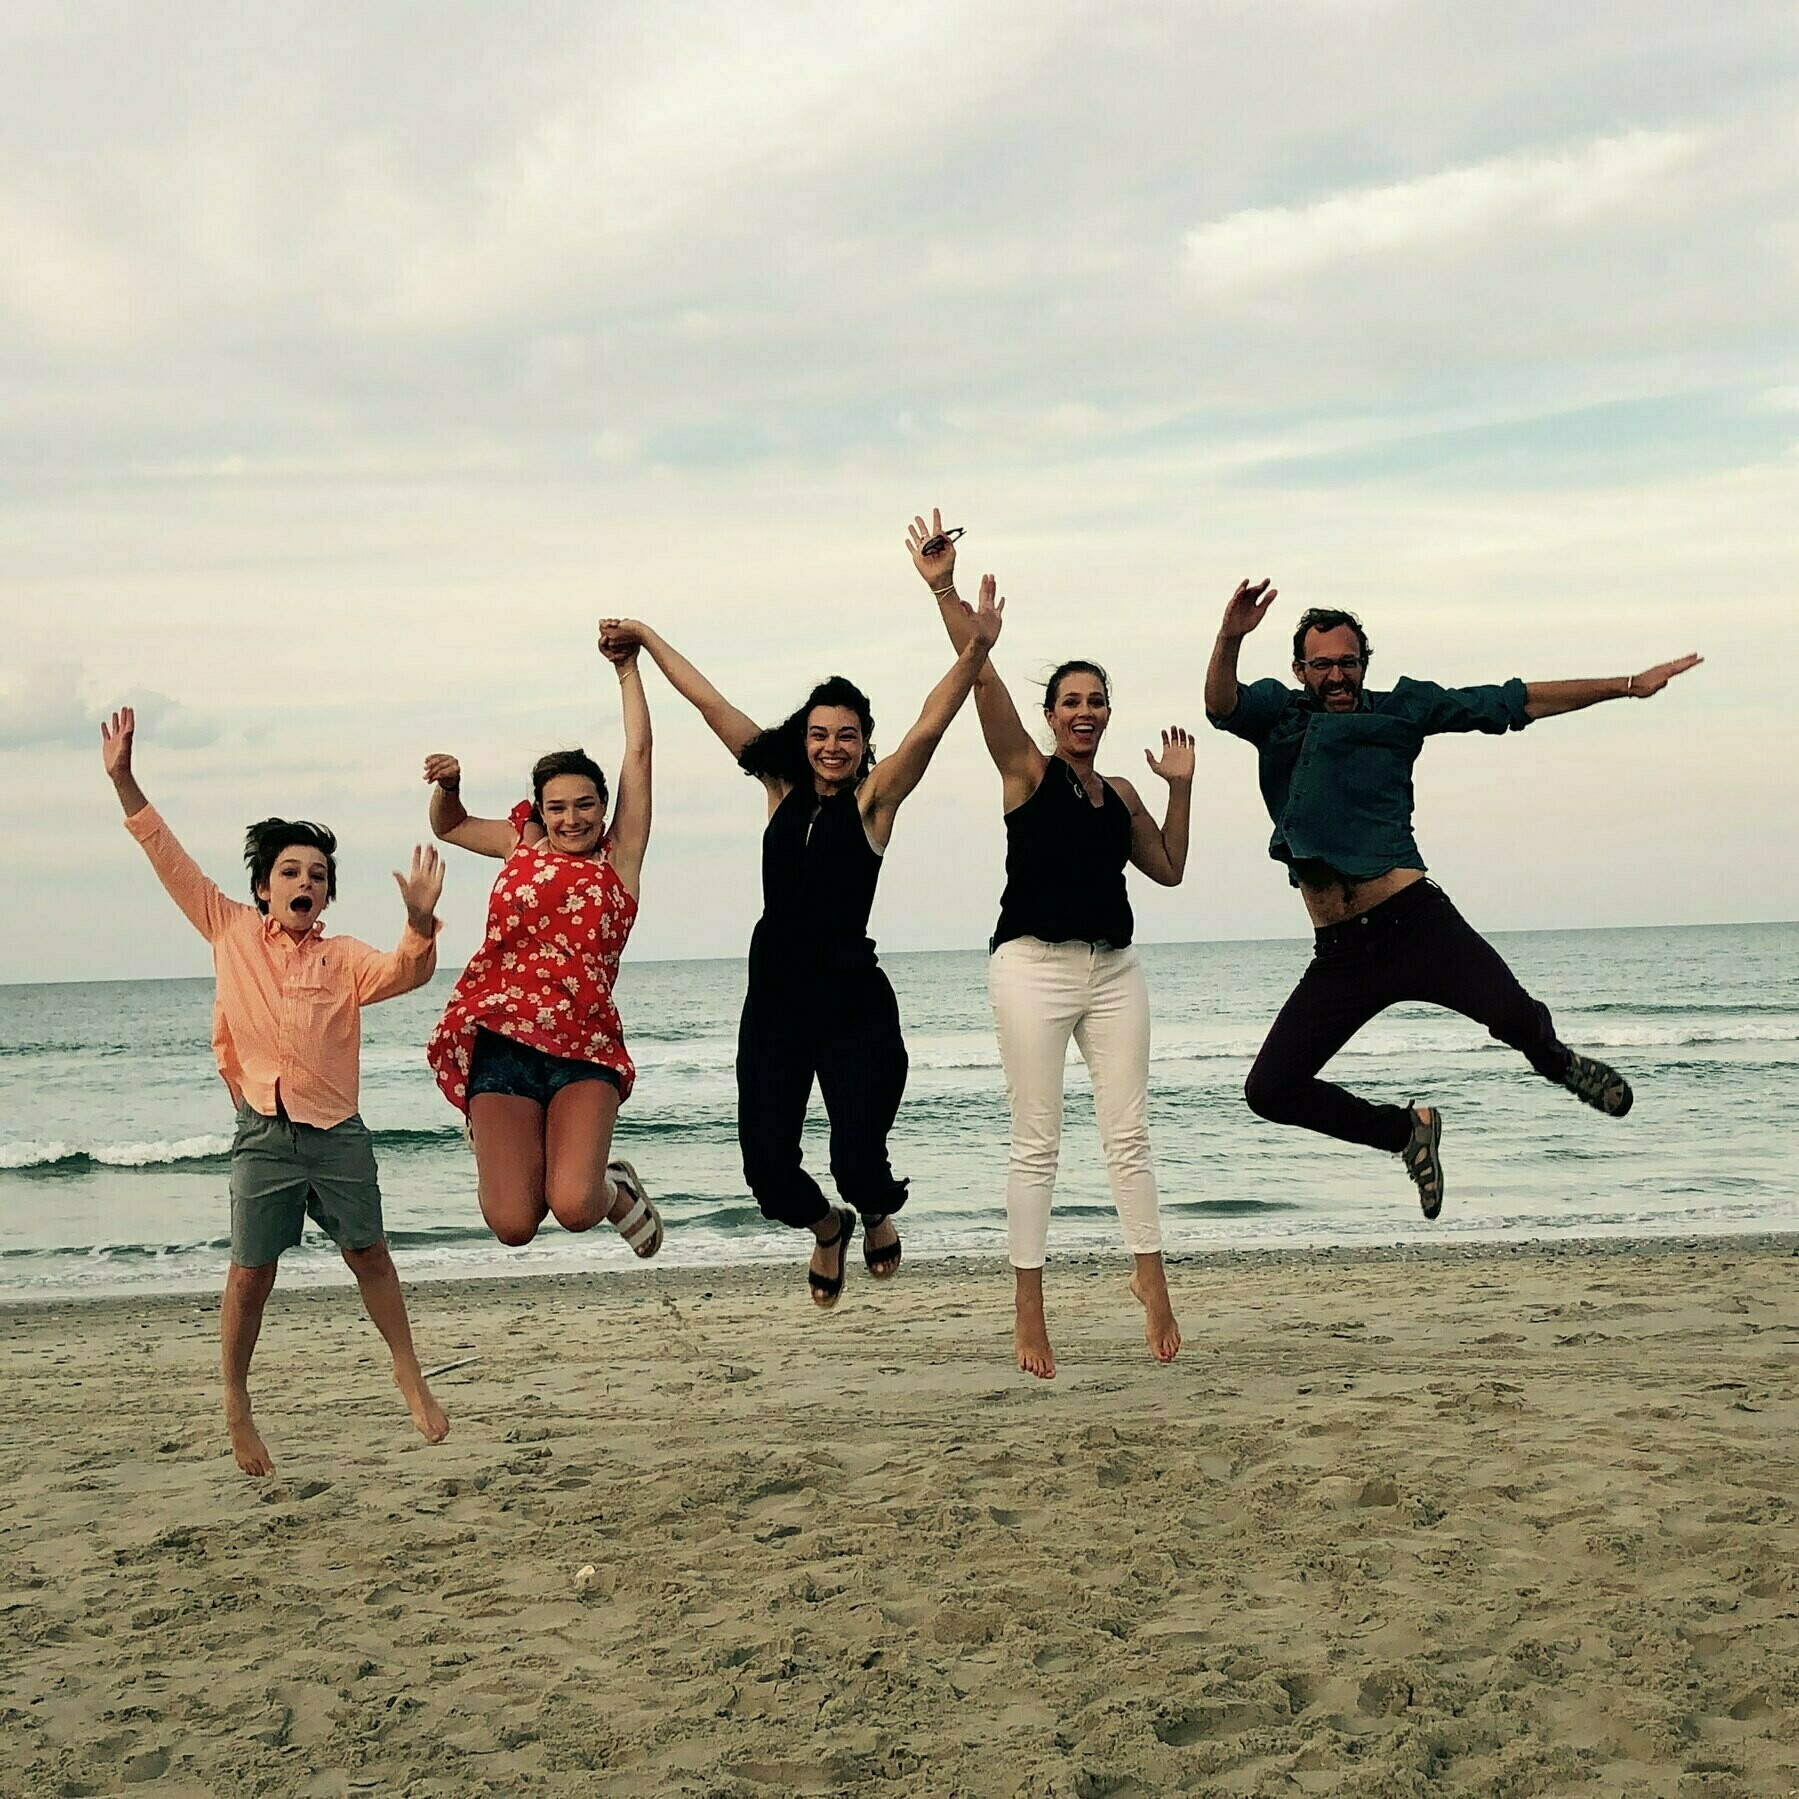 Zuiker Family jumping at the beach